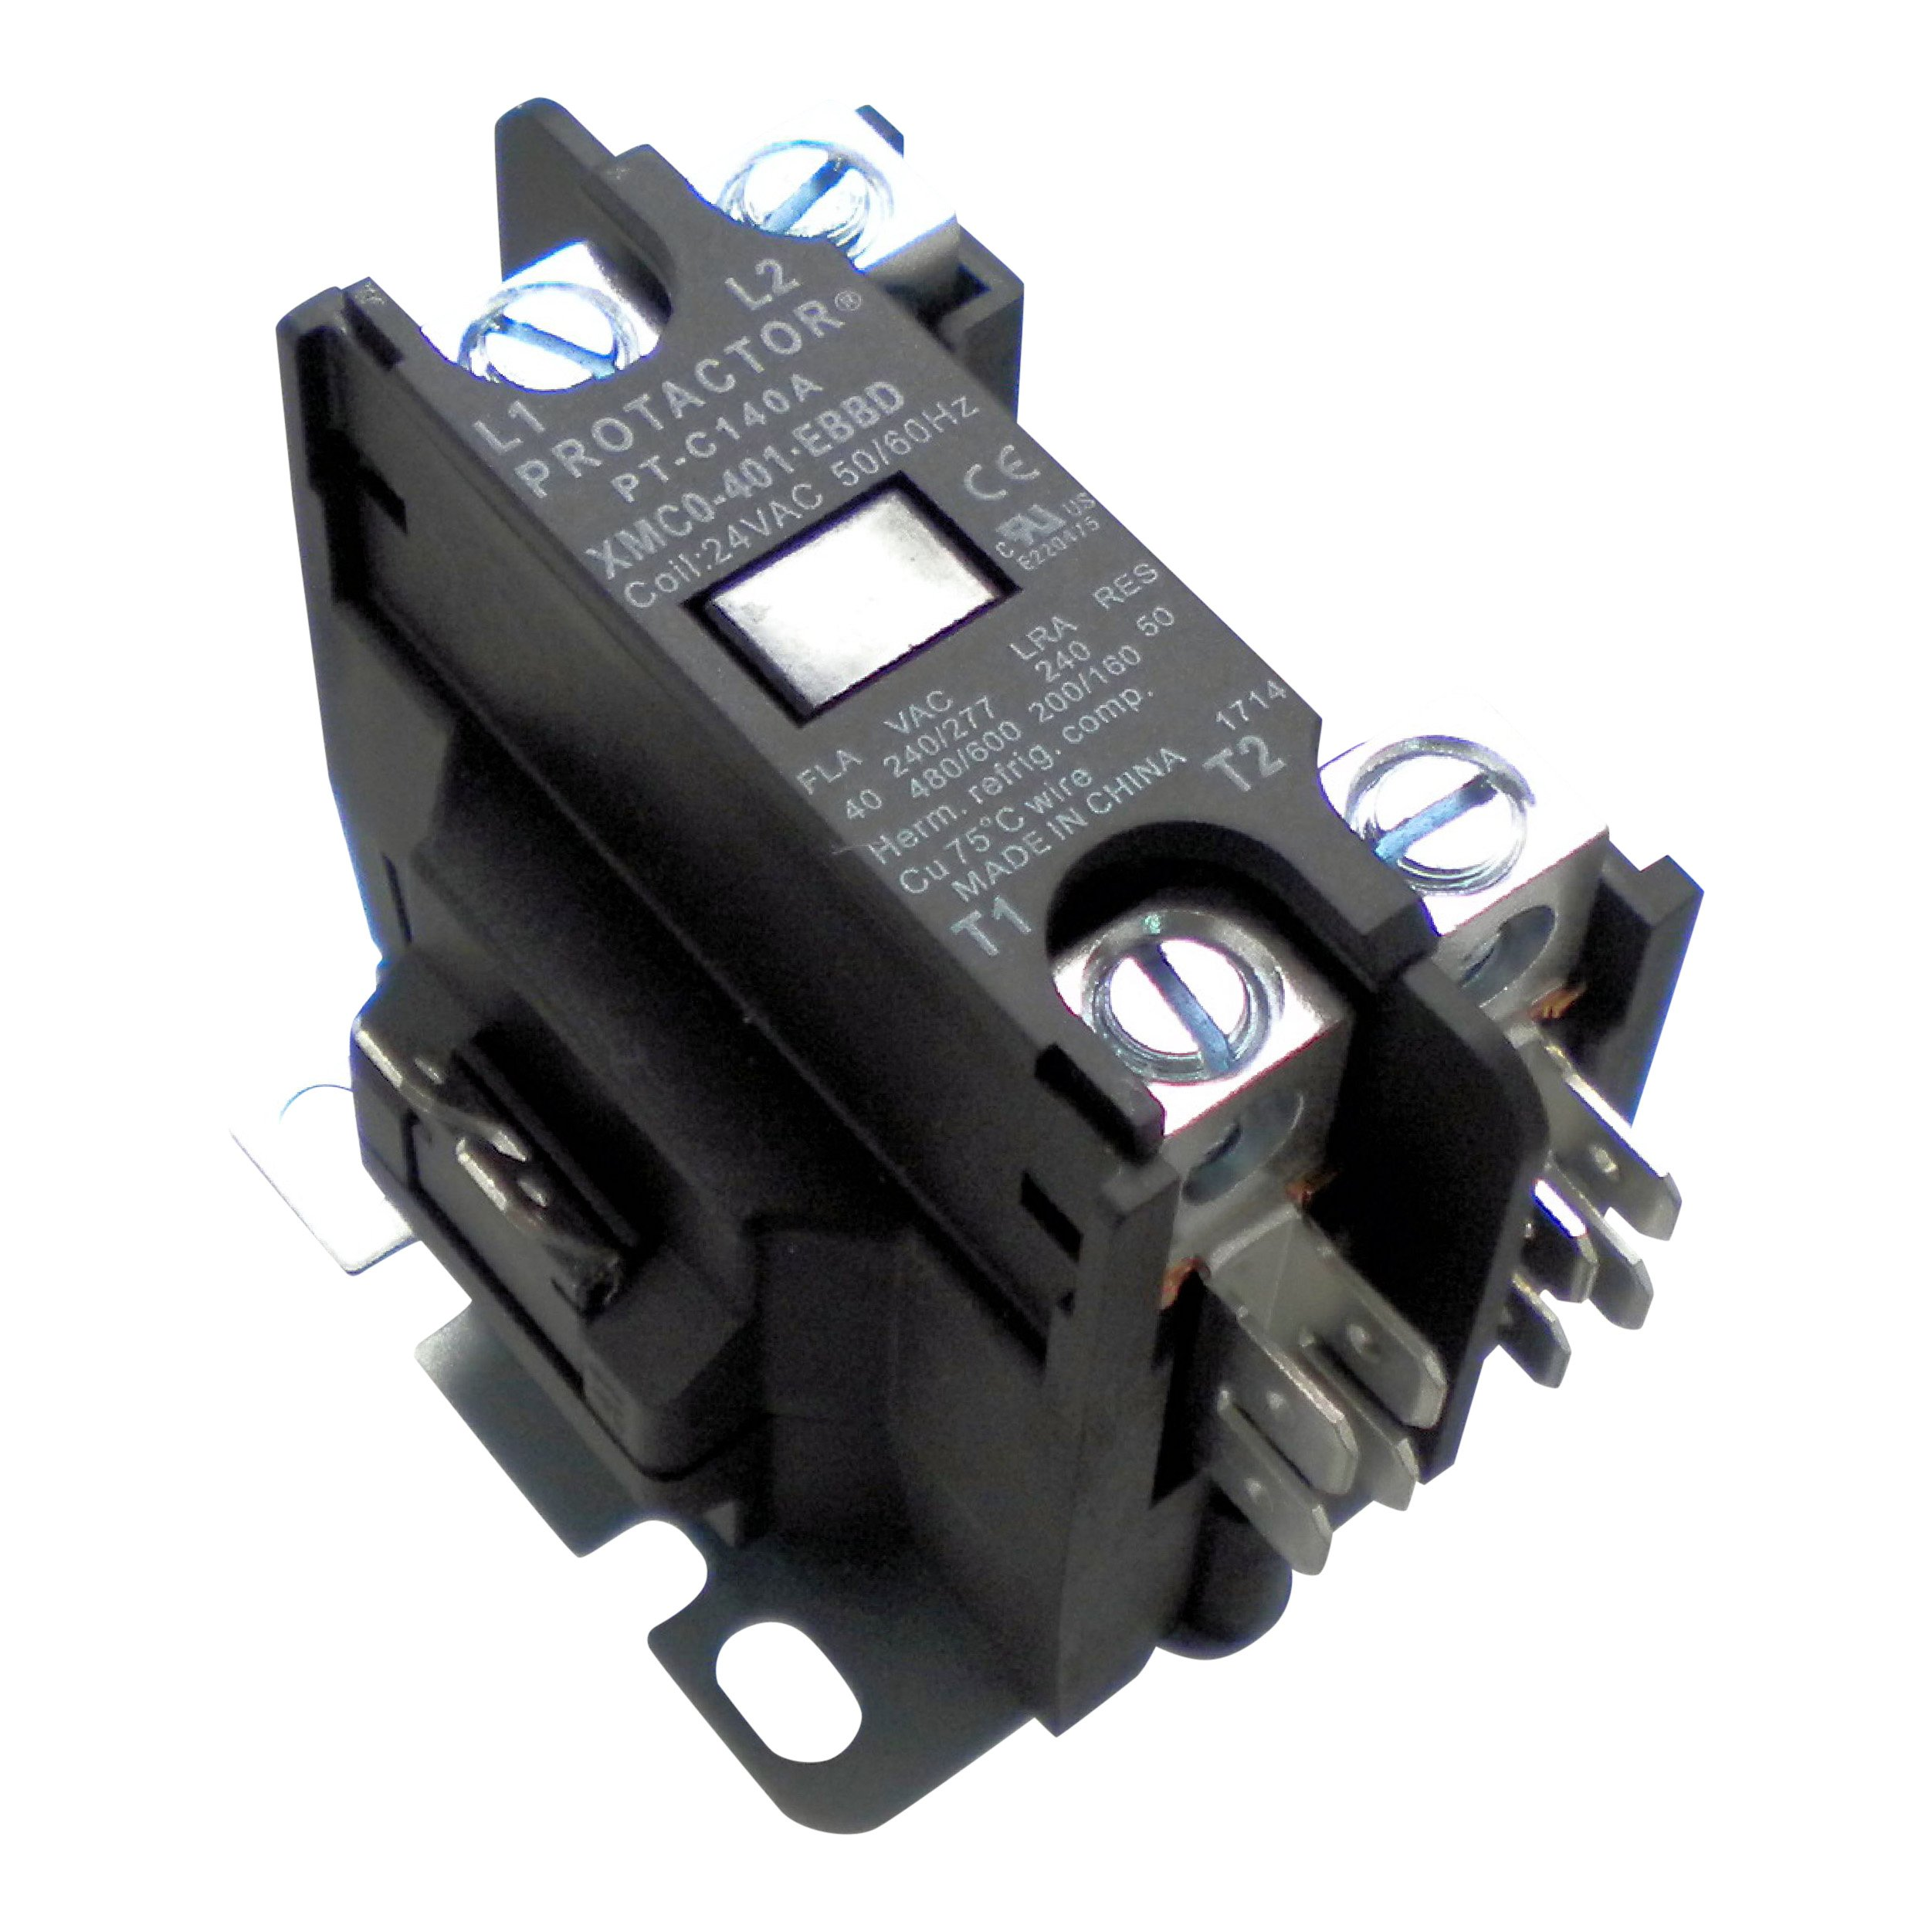 OneTrip Parts Contactor 40 Amp 1 Pole Protactor Direct Replacement For Rheem Ruud Weatherking 42-25101-03